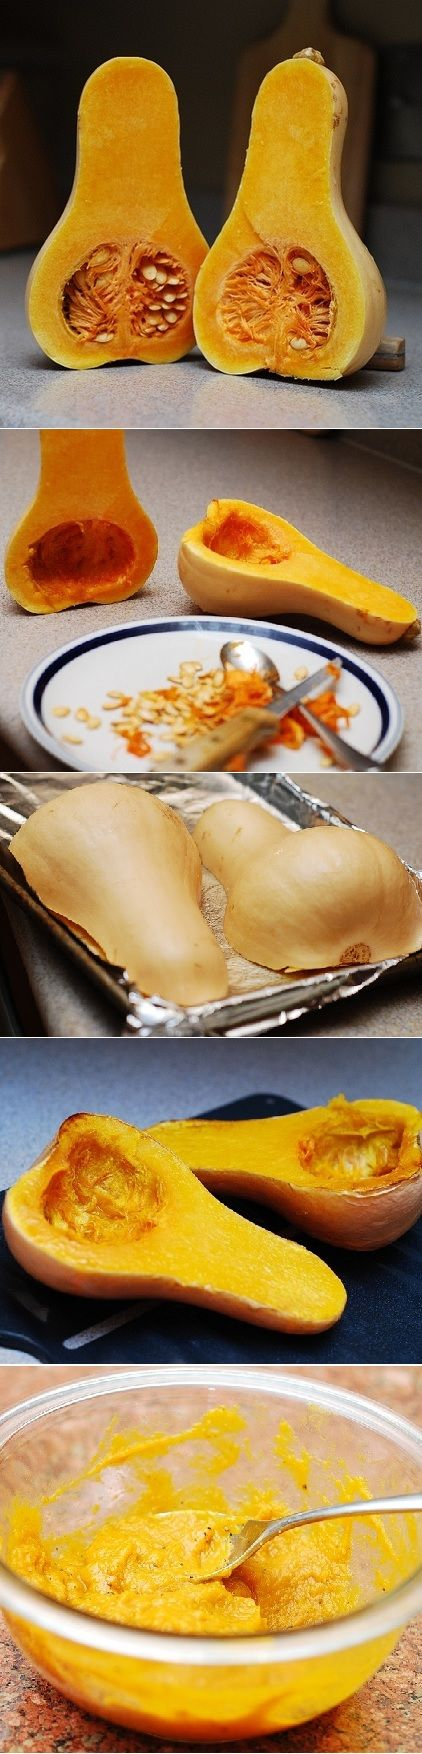 How to make homemade butternut squash puree to be used in soups, desserts, etc. Step-by-step photos. You can use the same process for making pumpkin puree | JuliasAlbum.com | #Fall_cooking